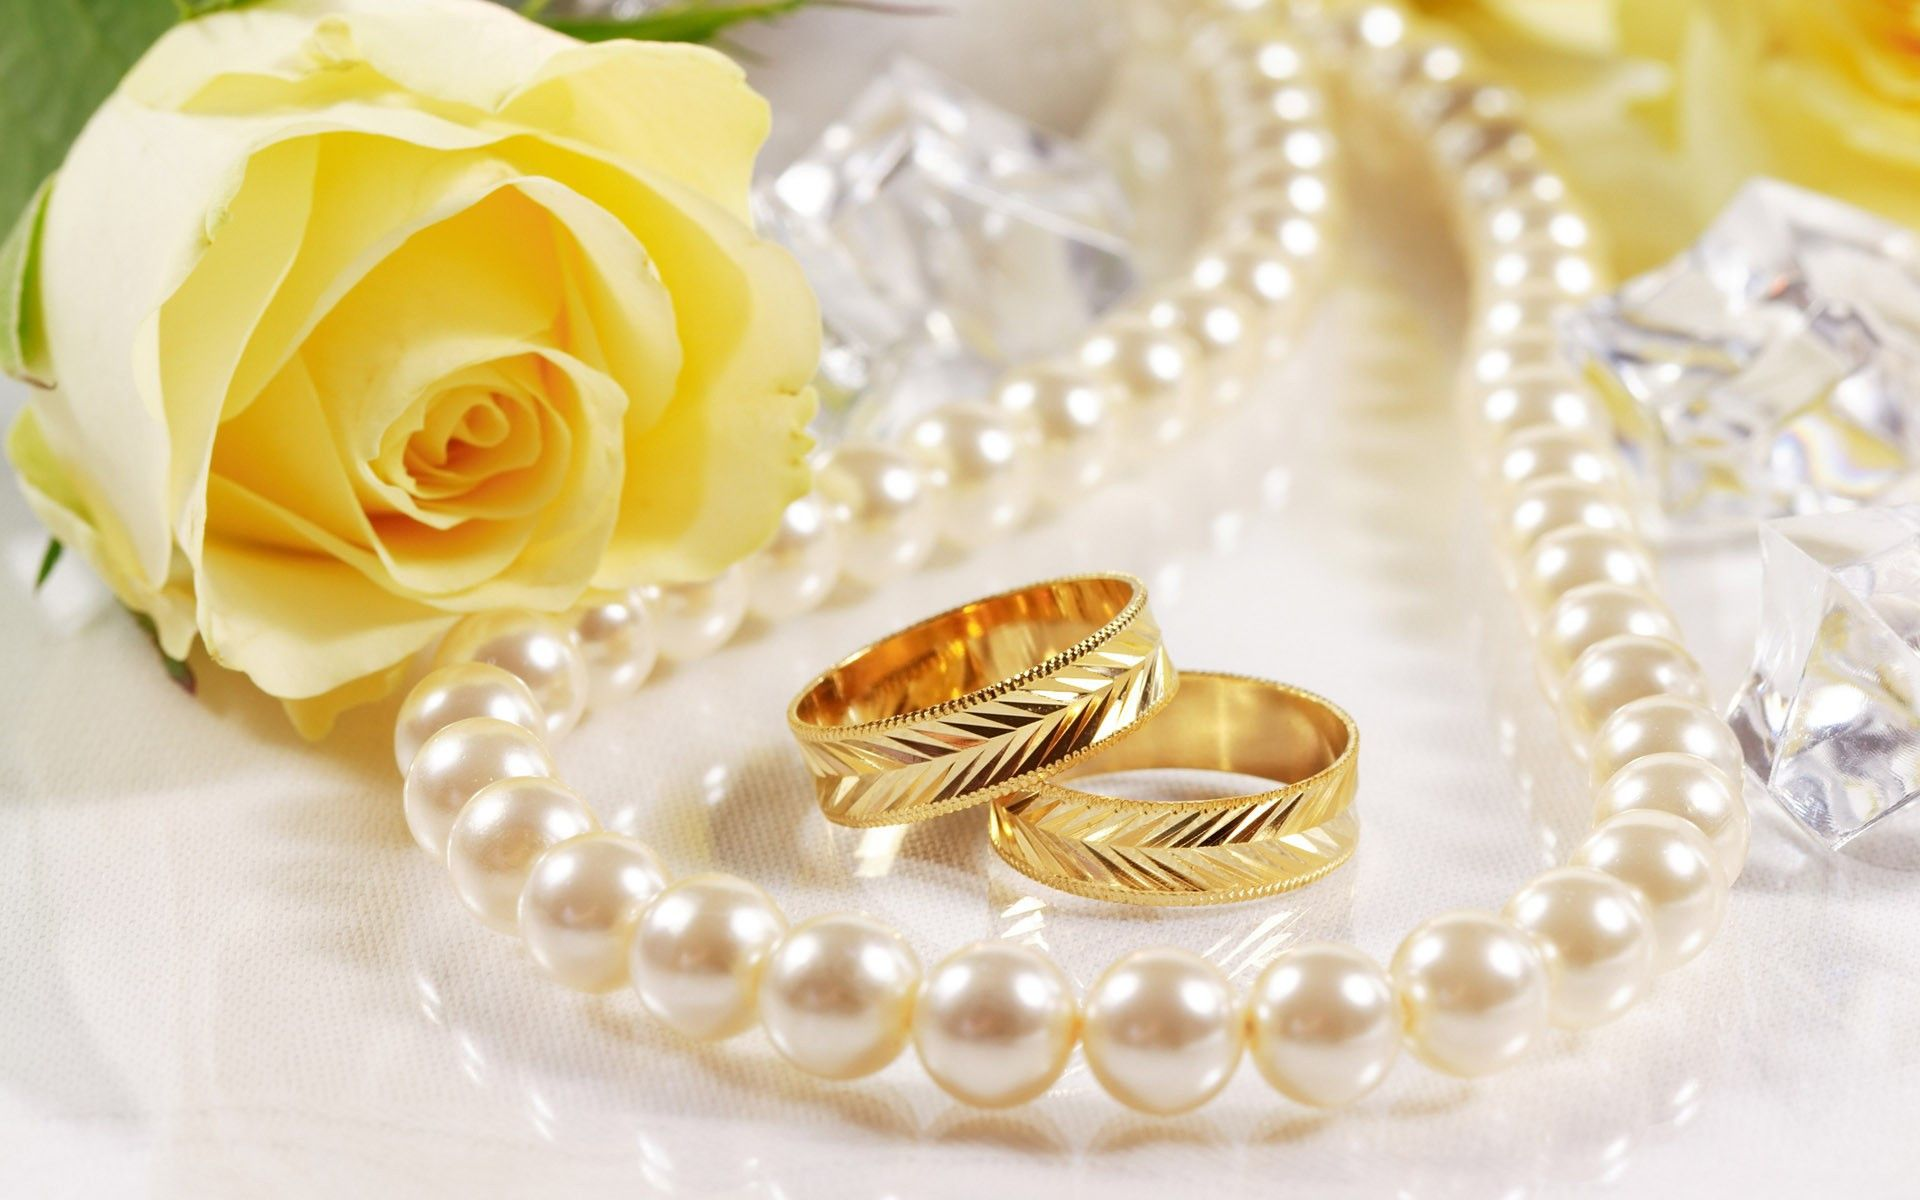 wedding rings pictures Wedding Ring and Flower Rose Wallpaper HD 11 High Resolution Wallpaper Full Size